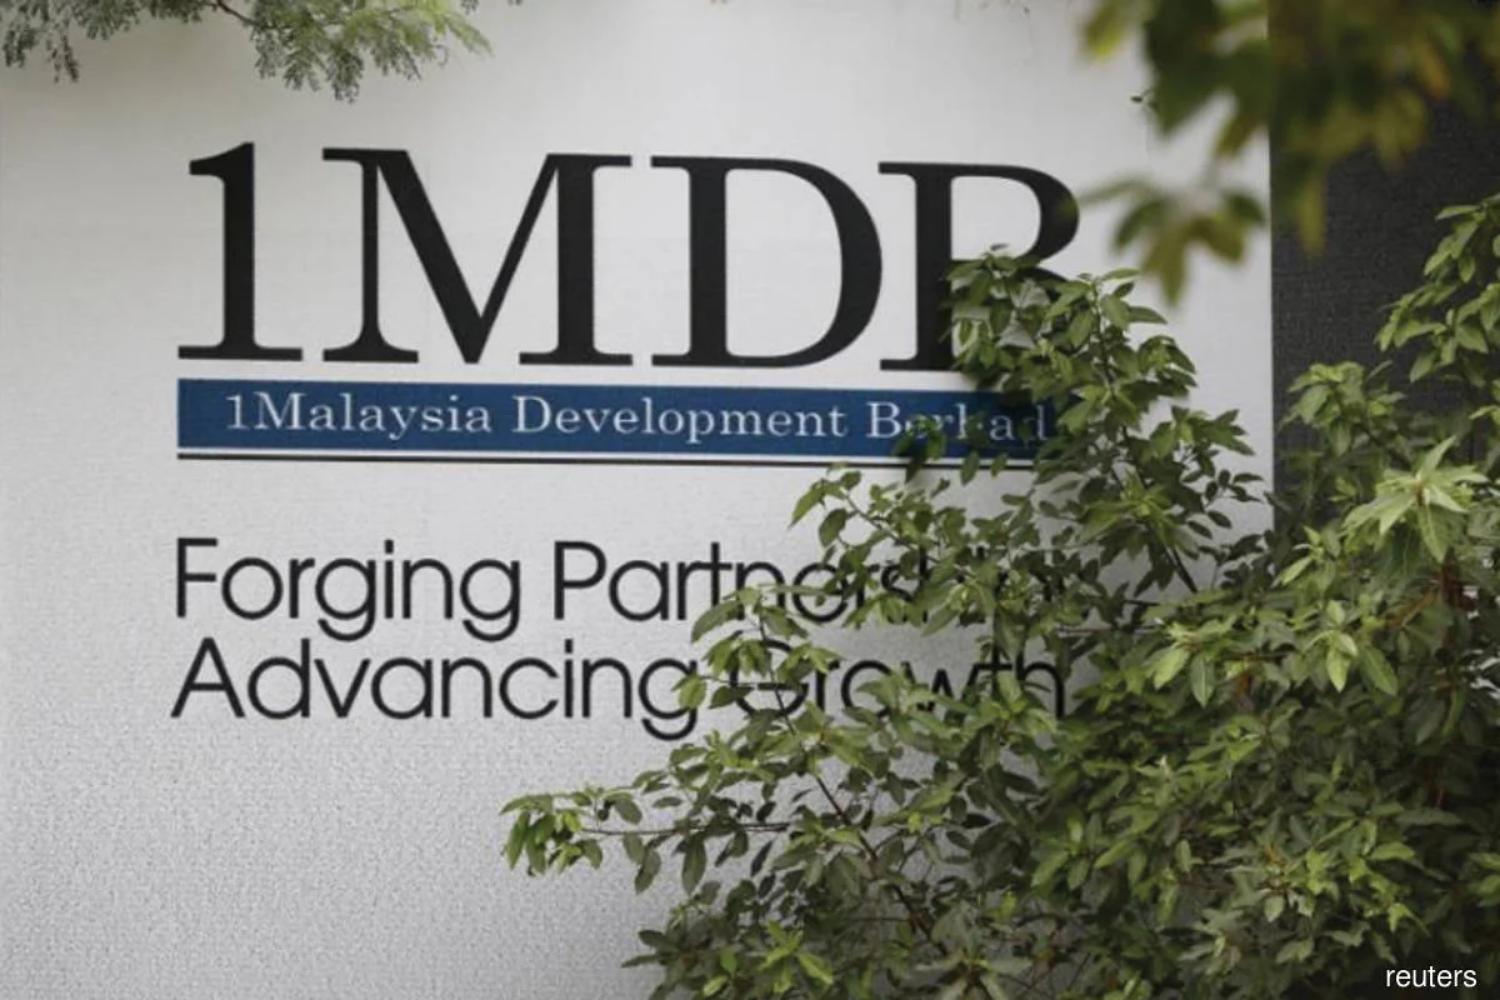 Top Abu Dhabi executives implicated in 1MDB scam believed to have been convicted